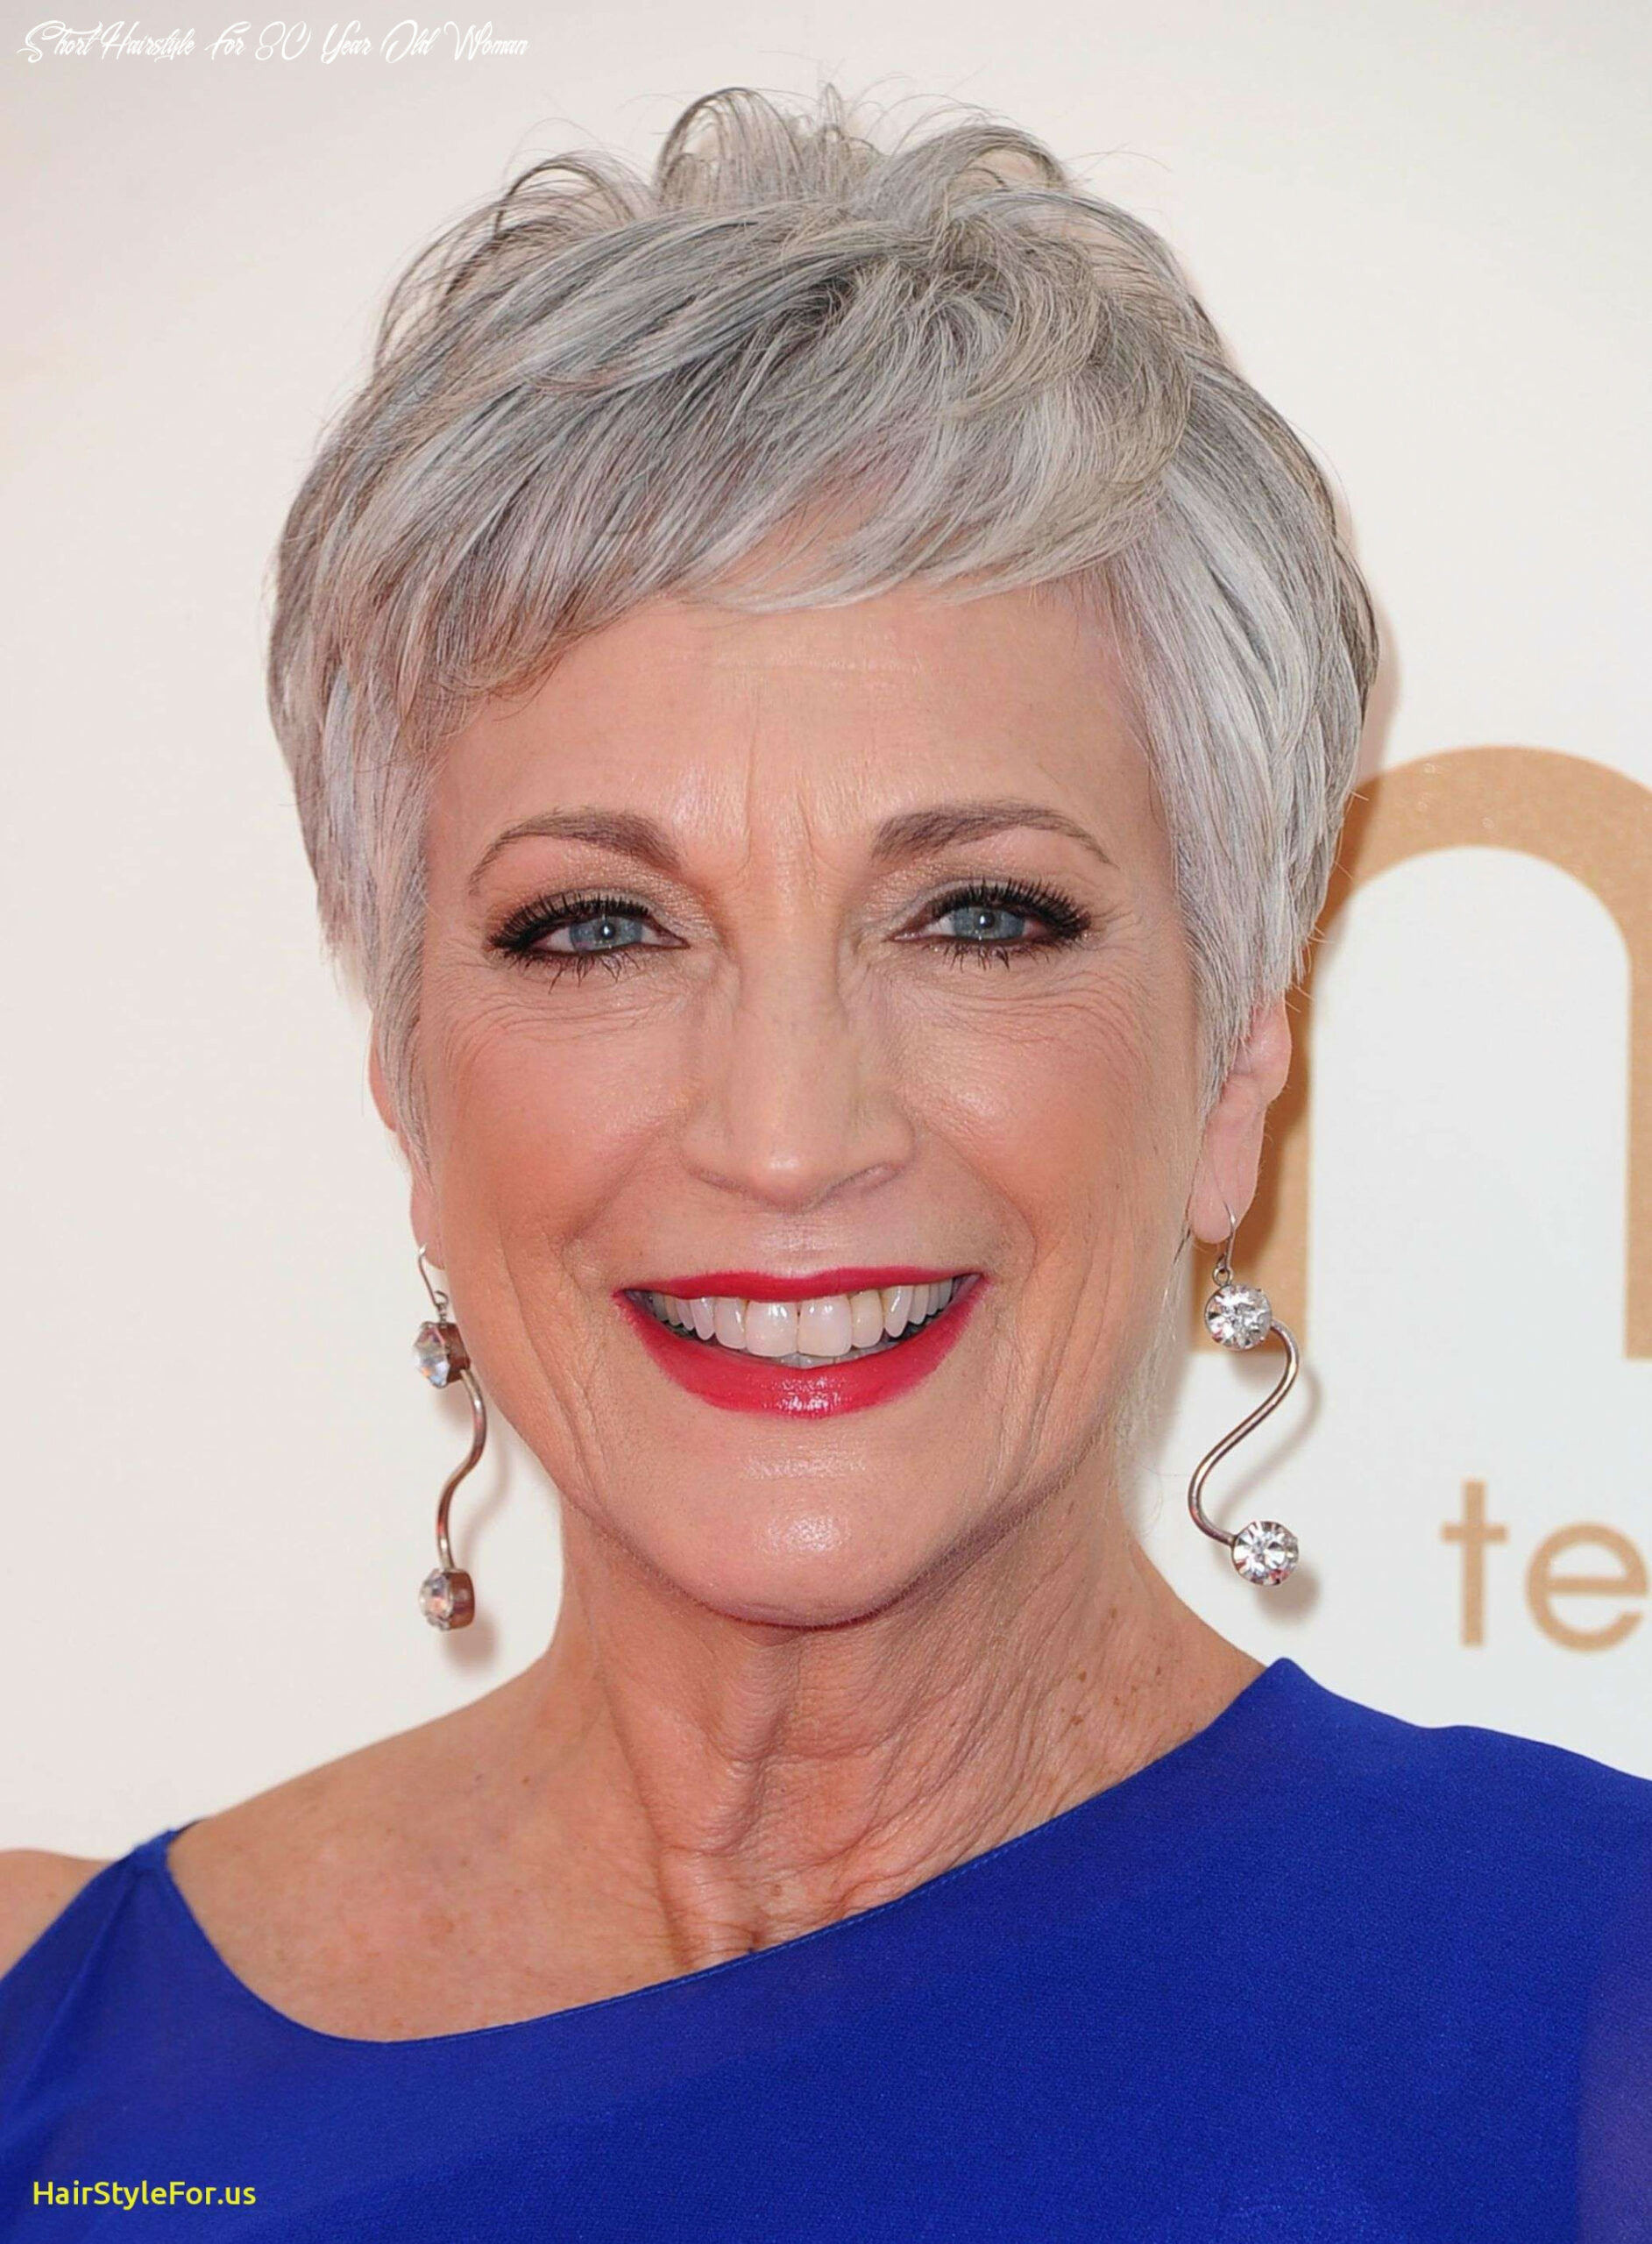 Pin on hair style ideas short hairstyle for 80 year old woman